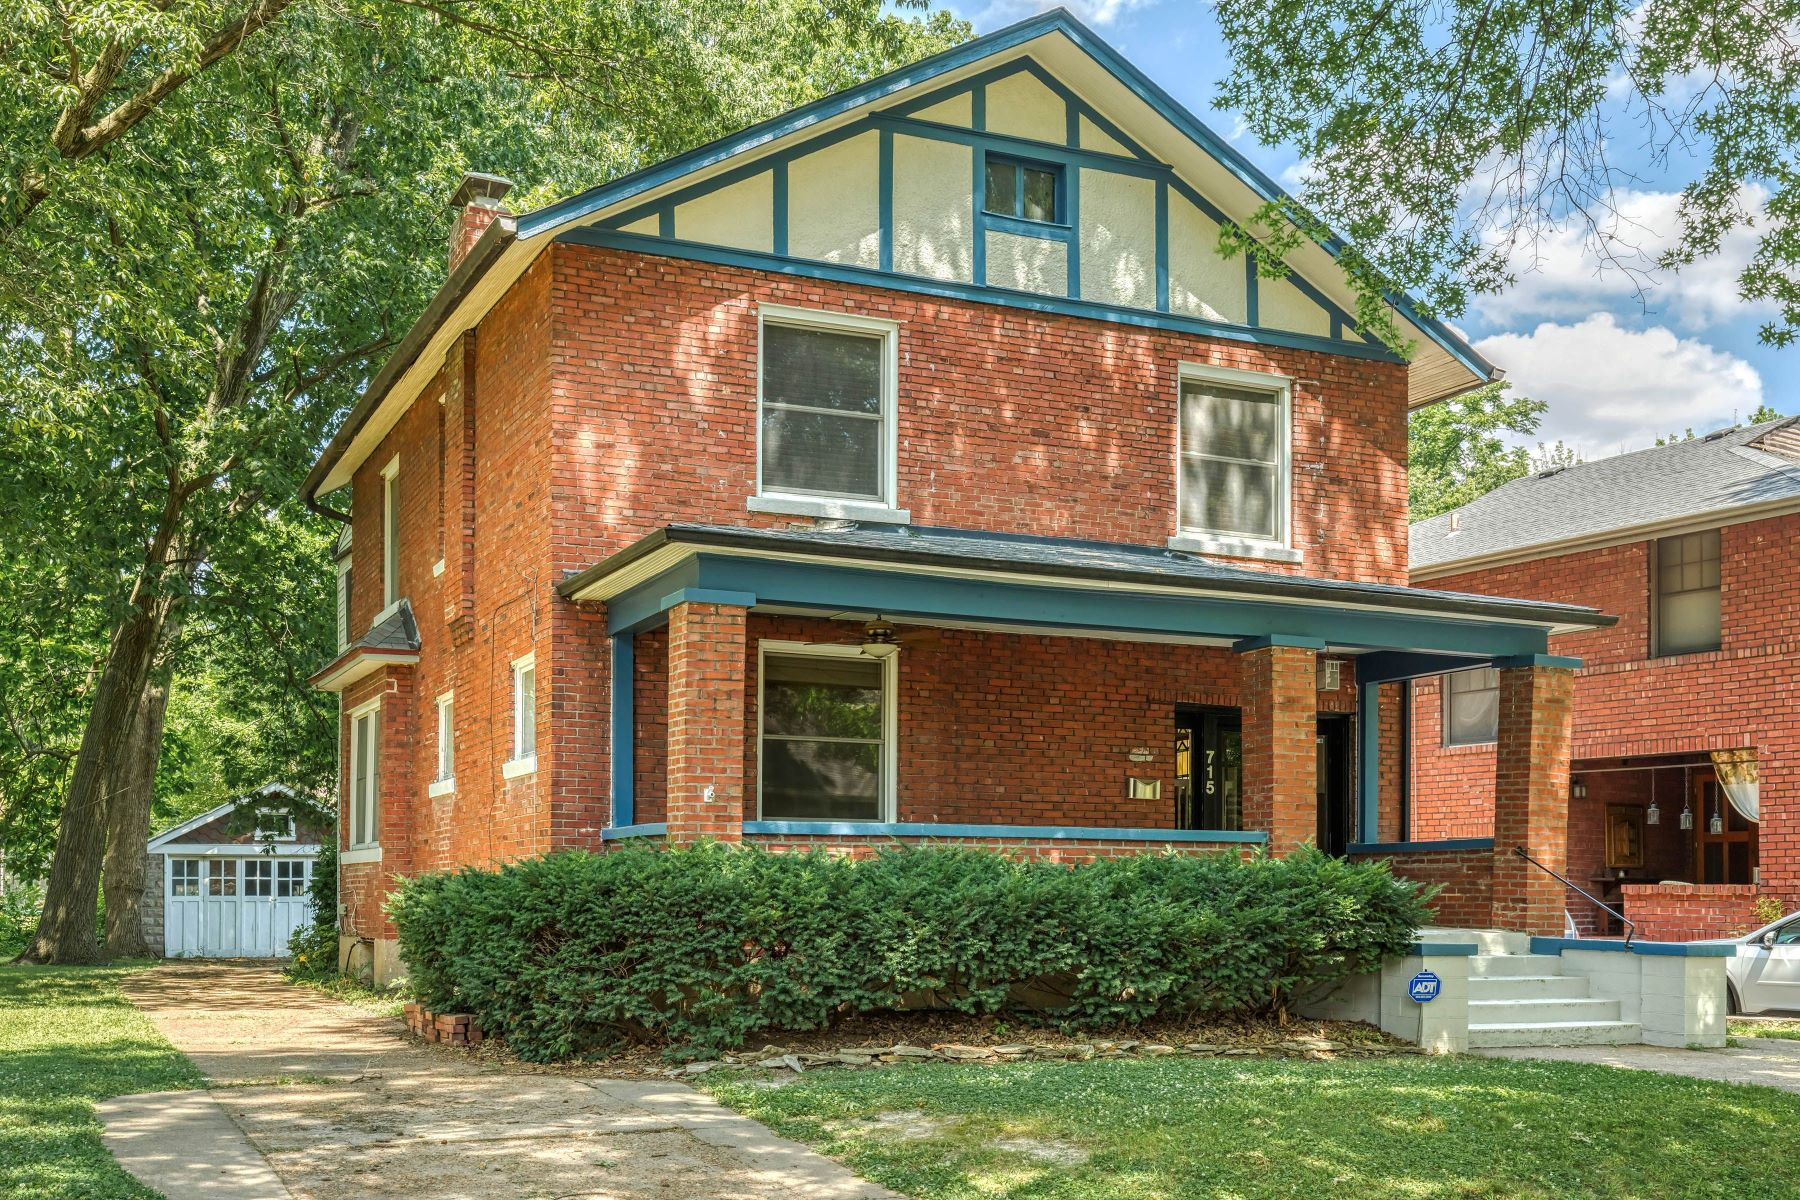 Single Family Homes for Sale at Gracious Century Home 715 Harvard Avenue University City, Missouri 63130 United States